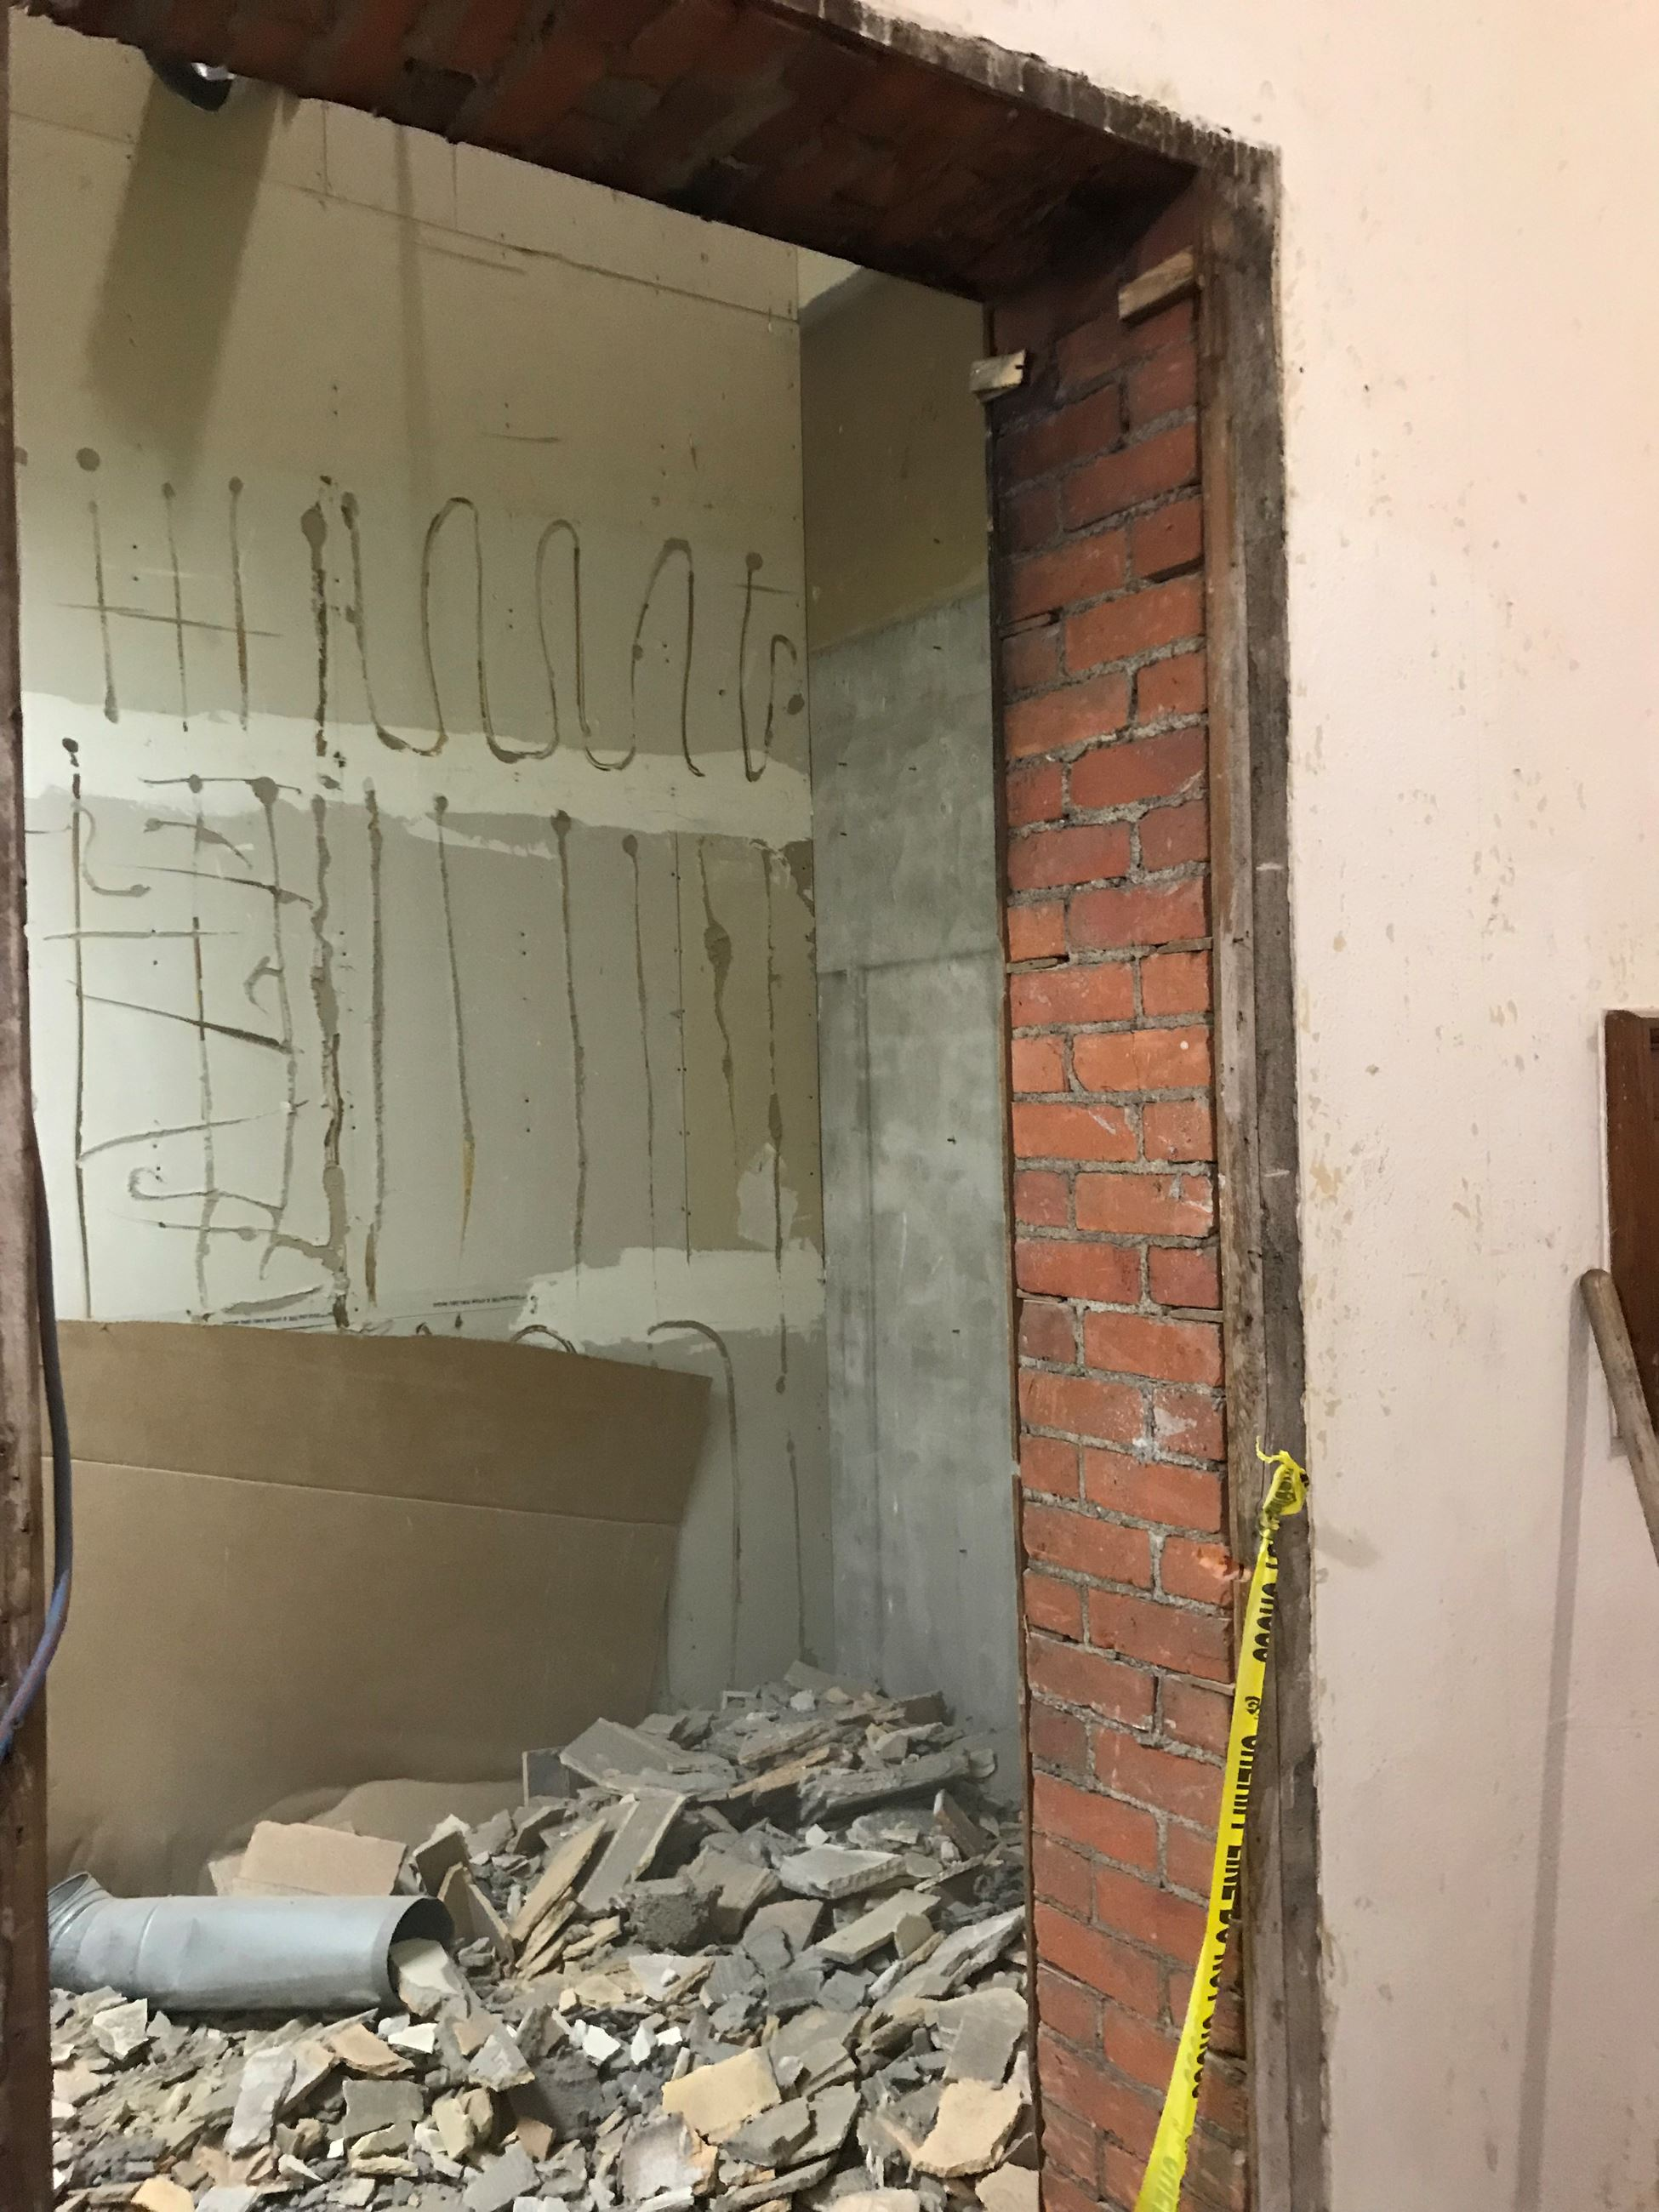 Exposed Brick from inside the courthouse during rennovation 11.28.18